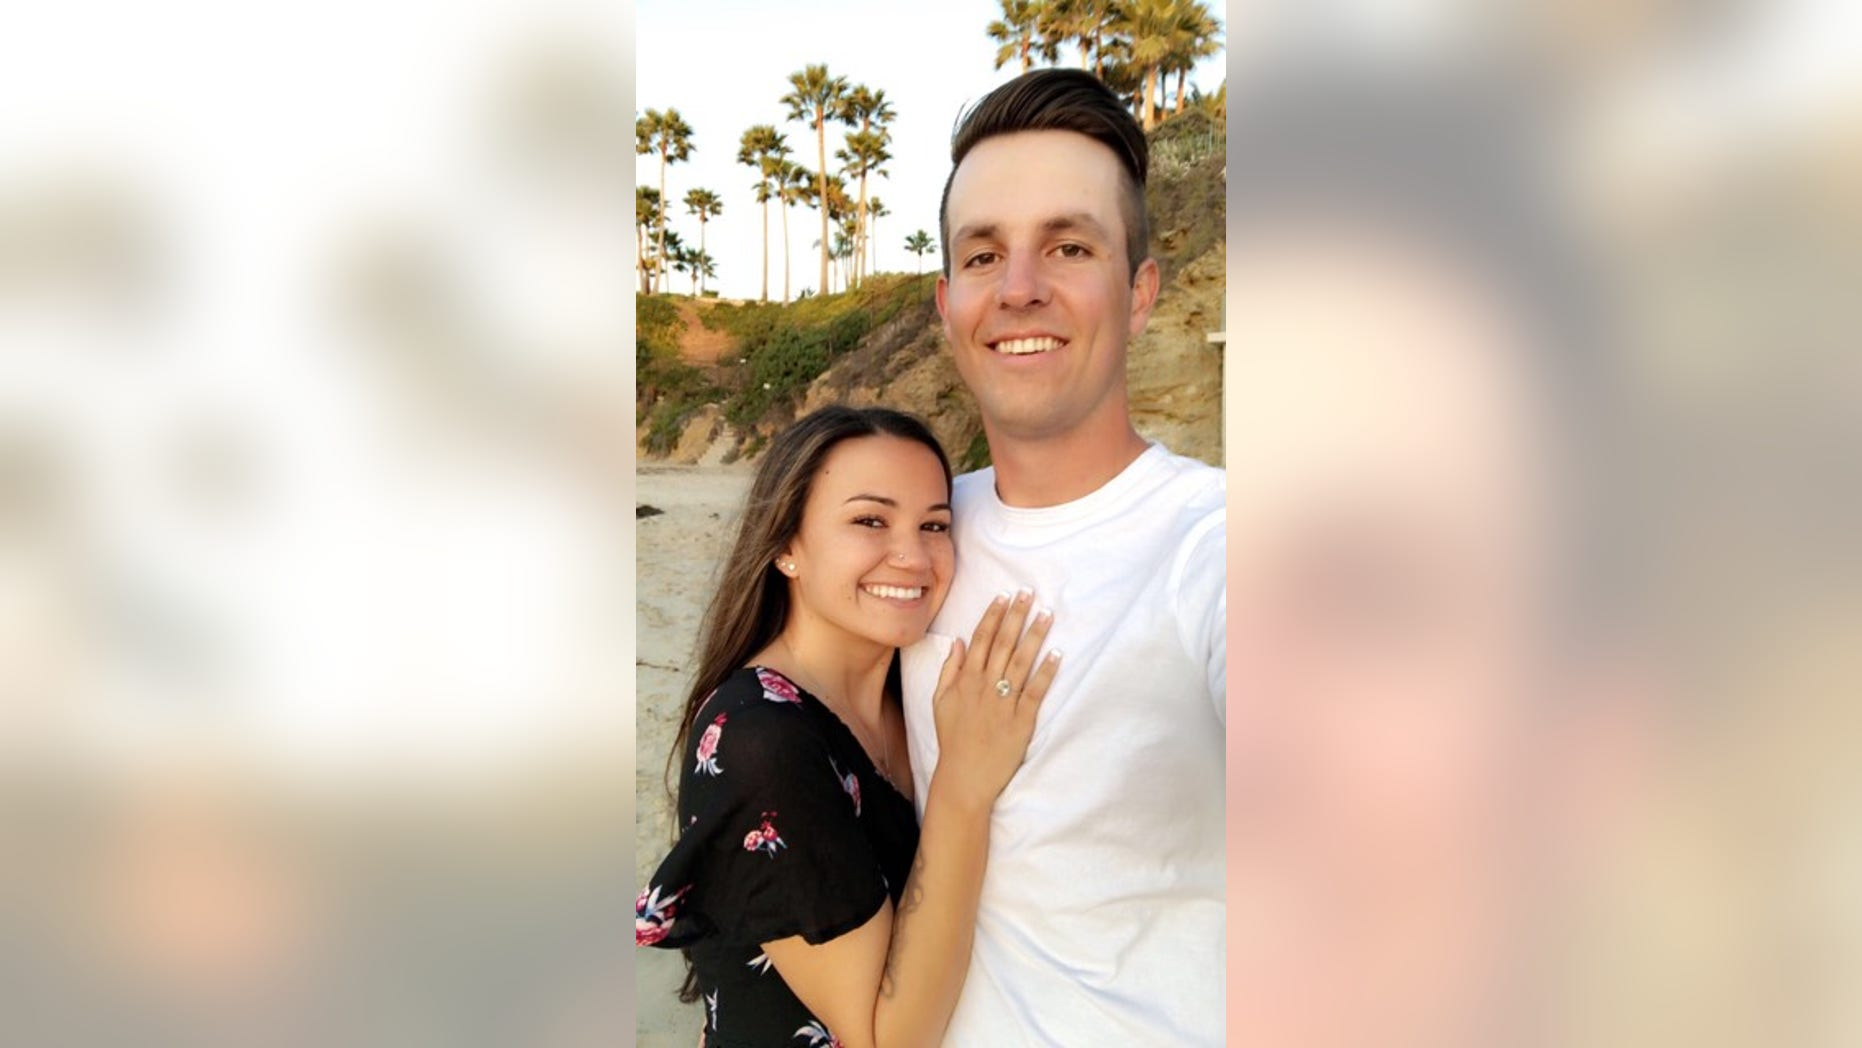 The couple, who survived the deadly Las Vegas shooting in October 2017, is slated to wed on August 3.